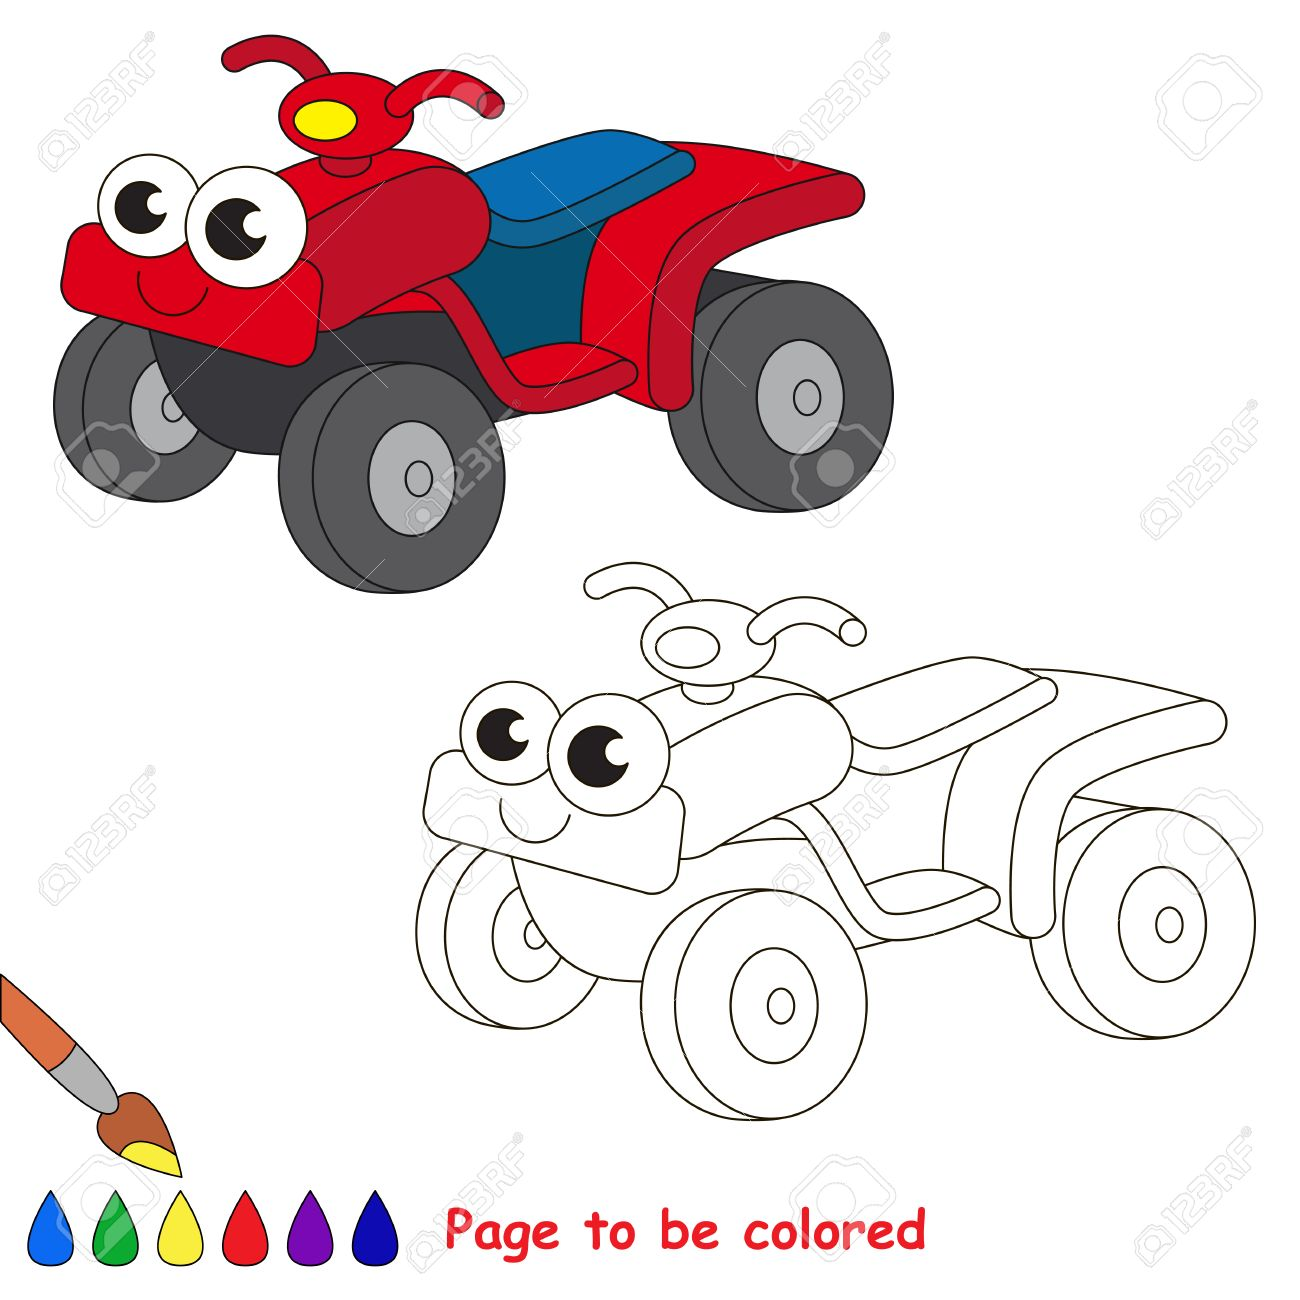 Quad Bike To Be Colored. Coloring Book To Educate Kids. Learn ...